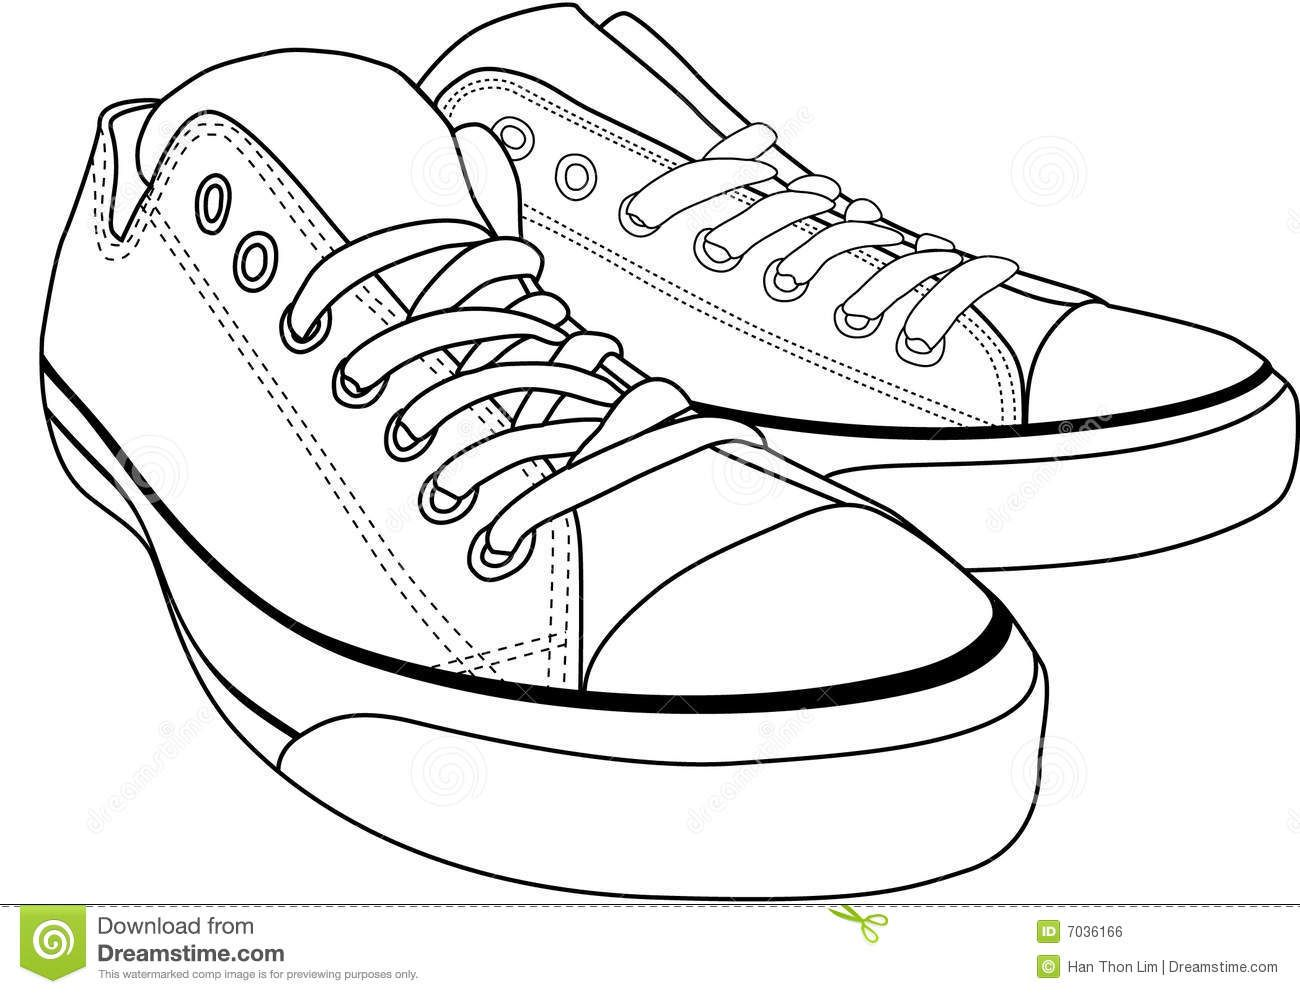 Feet with shoes clipart black and white clipart transparent stock Gym-shoes clipart black and white #5 | Art Class- Line | Shoes ... clipart transparent stock